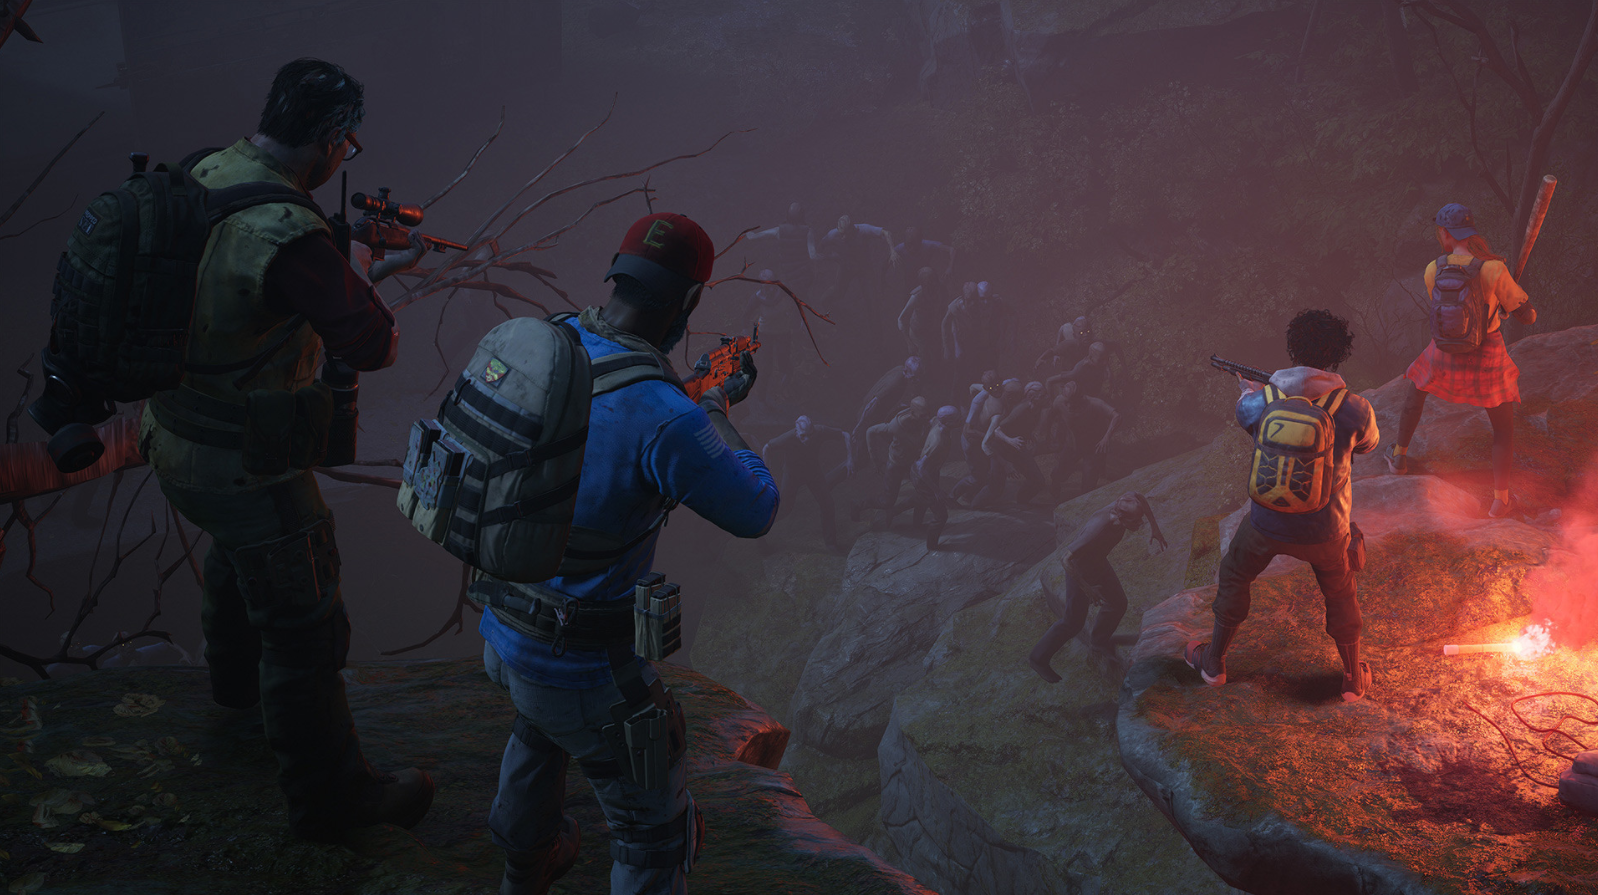 back-4-blood-hands-on-preview-ps5-ps4-left-4-dead-done-right-by-the-developers-who-made-the-franchise-succeed-3